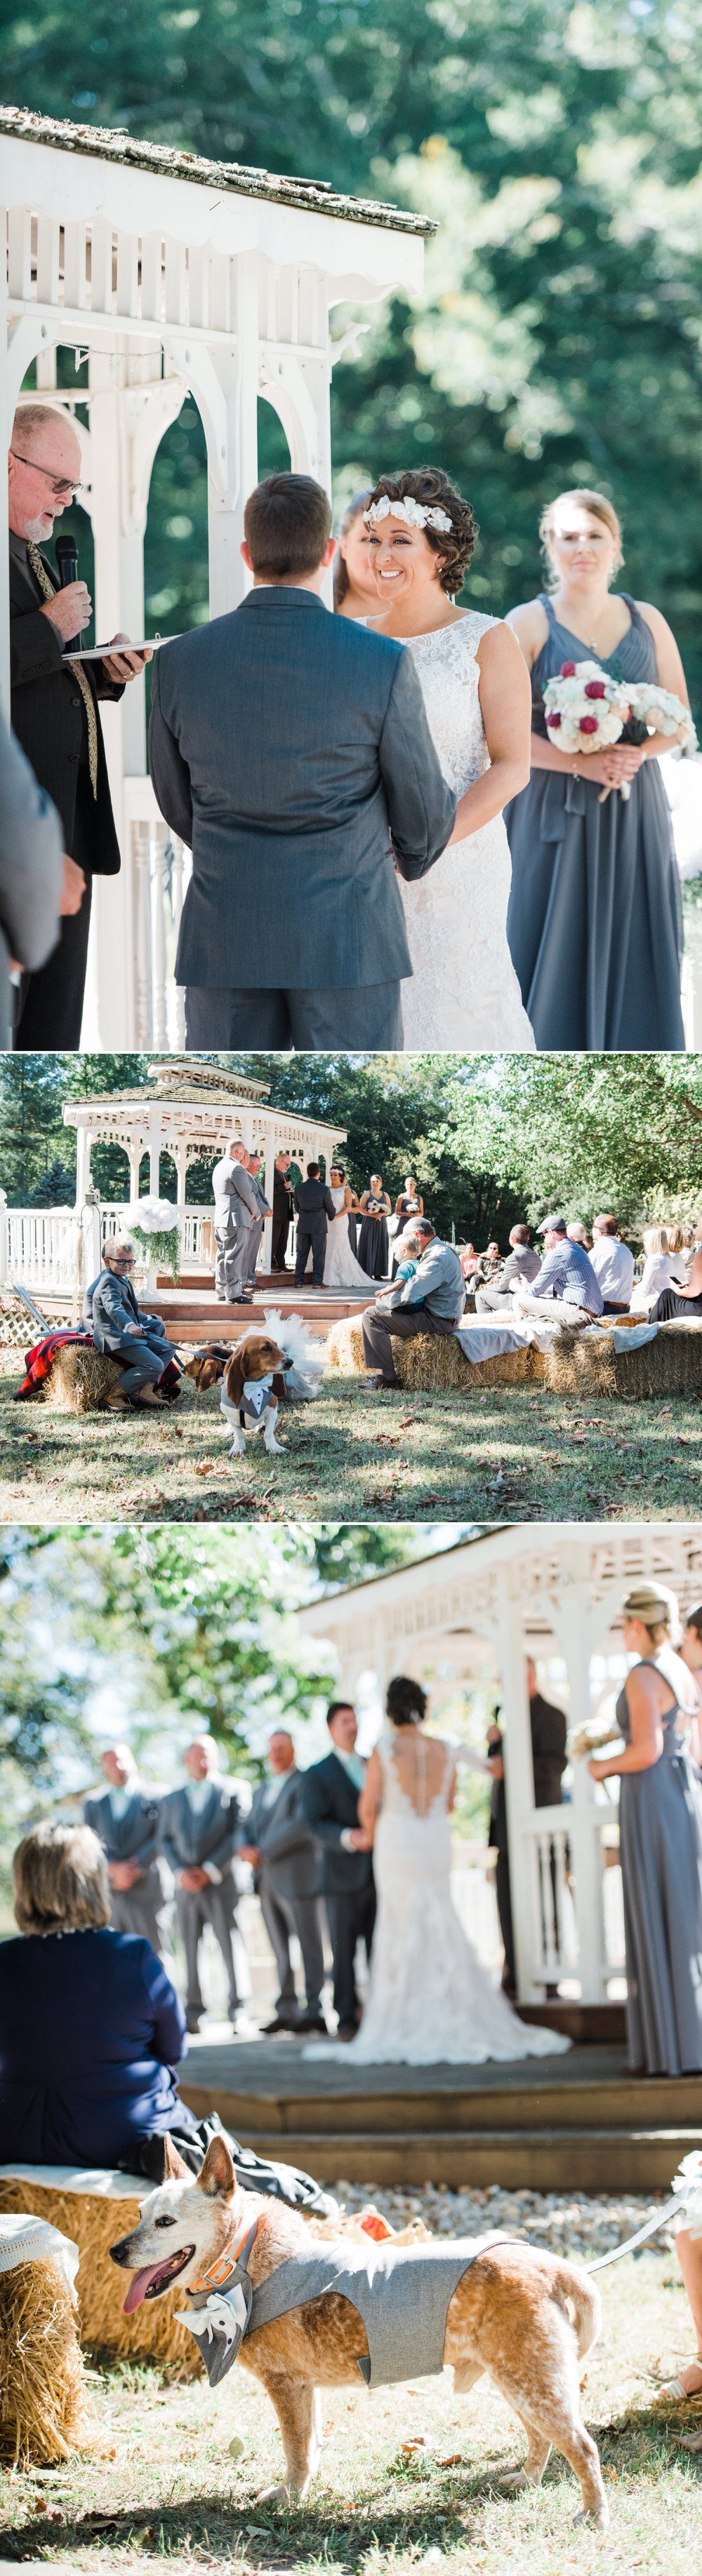 Rustic Barn Wedding with Sweet Rescue Dogs in Central Indiana_0014.jpg